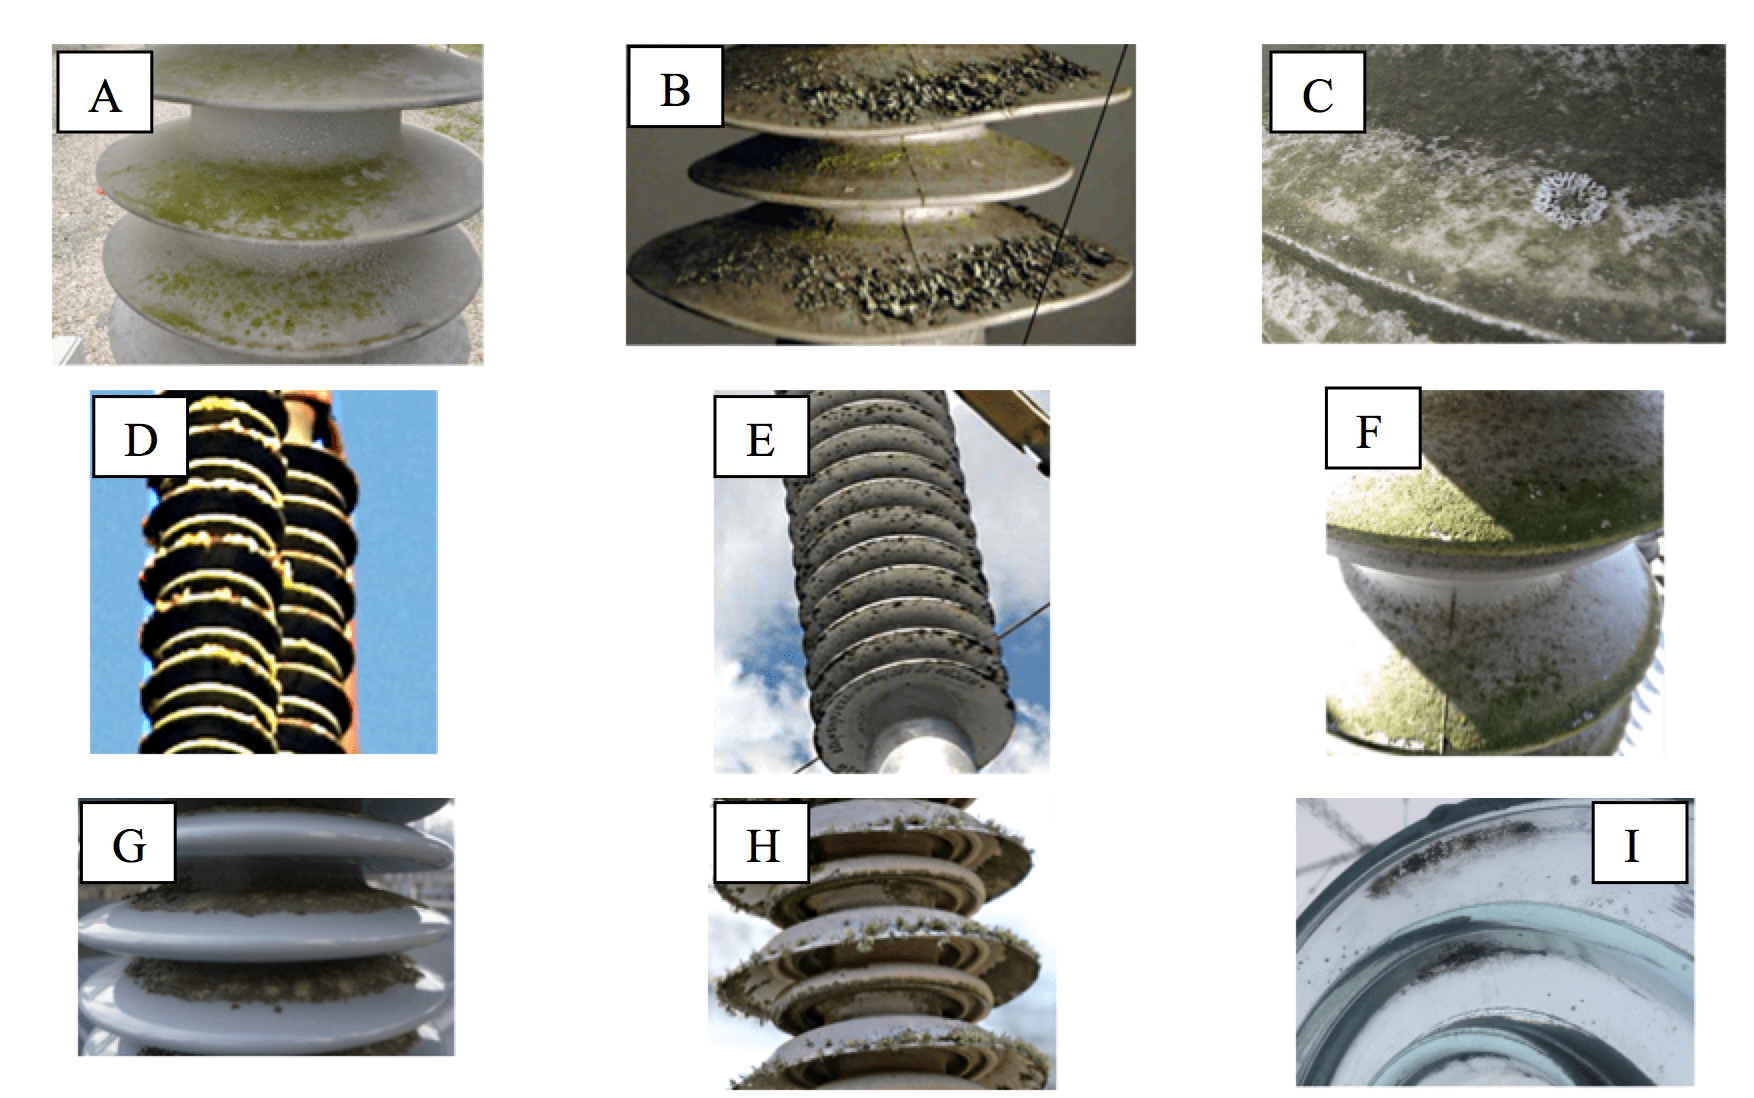 [object object] Biological Growths on Composite Insulators HV insulators